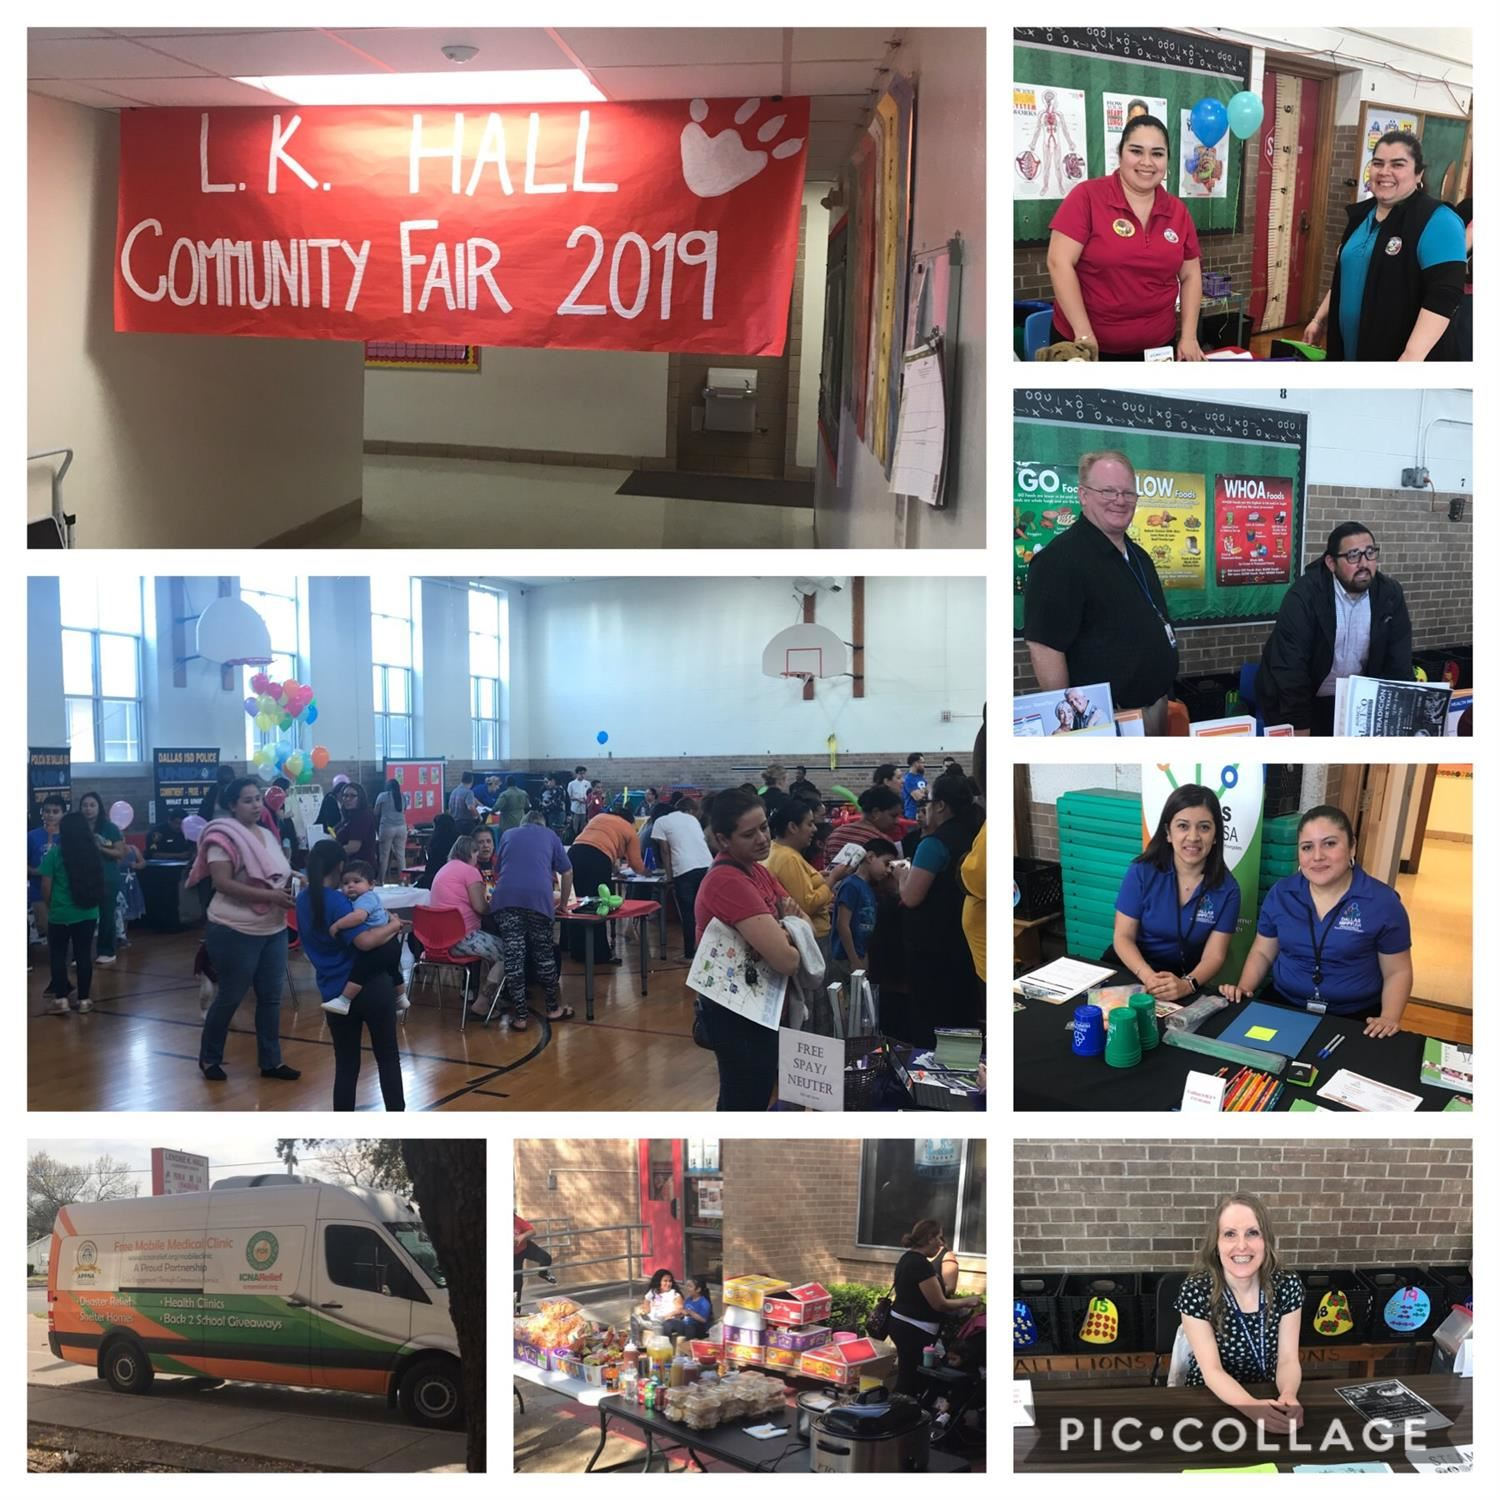 Community Fair was a Great Success!